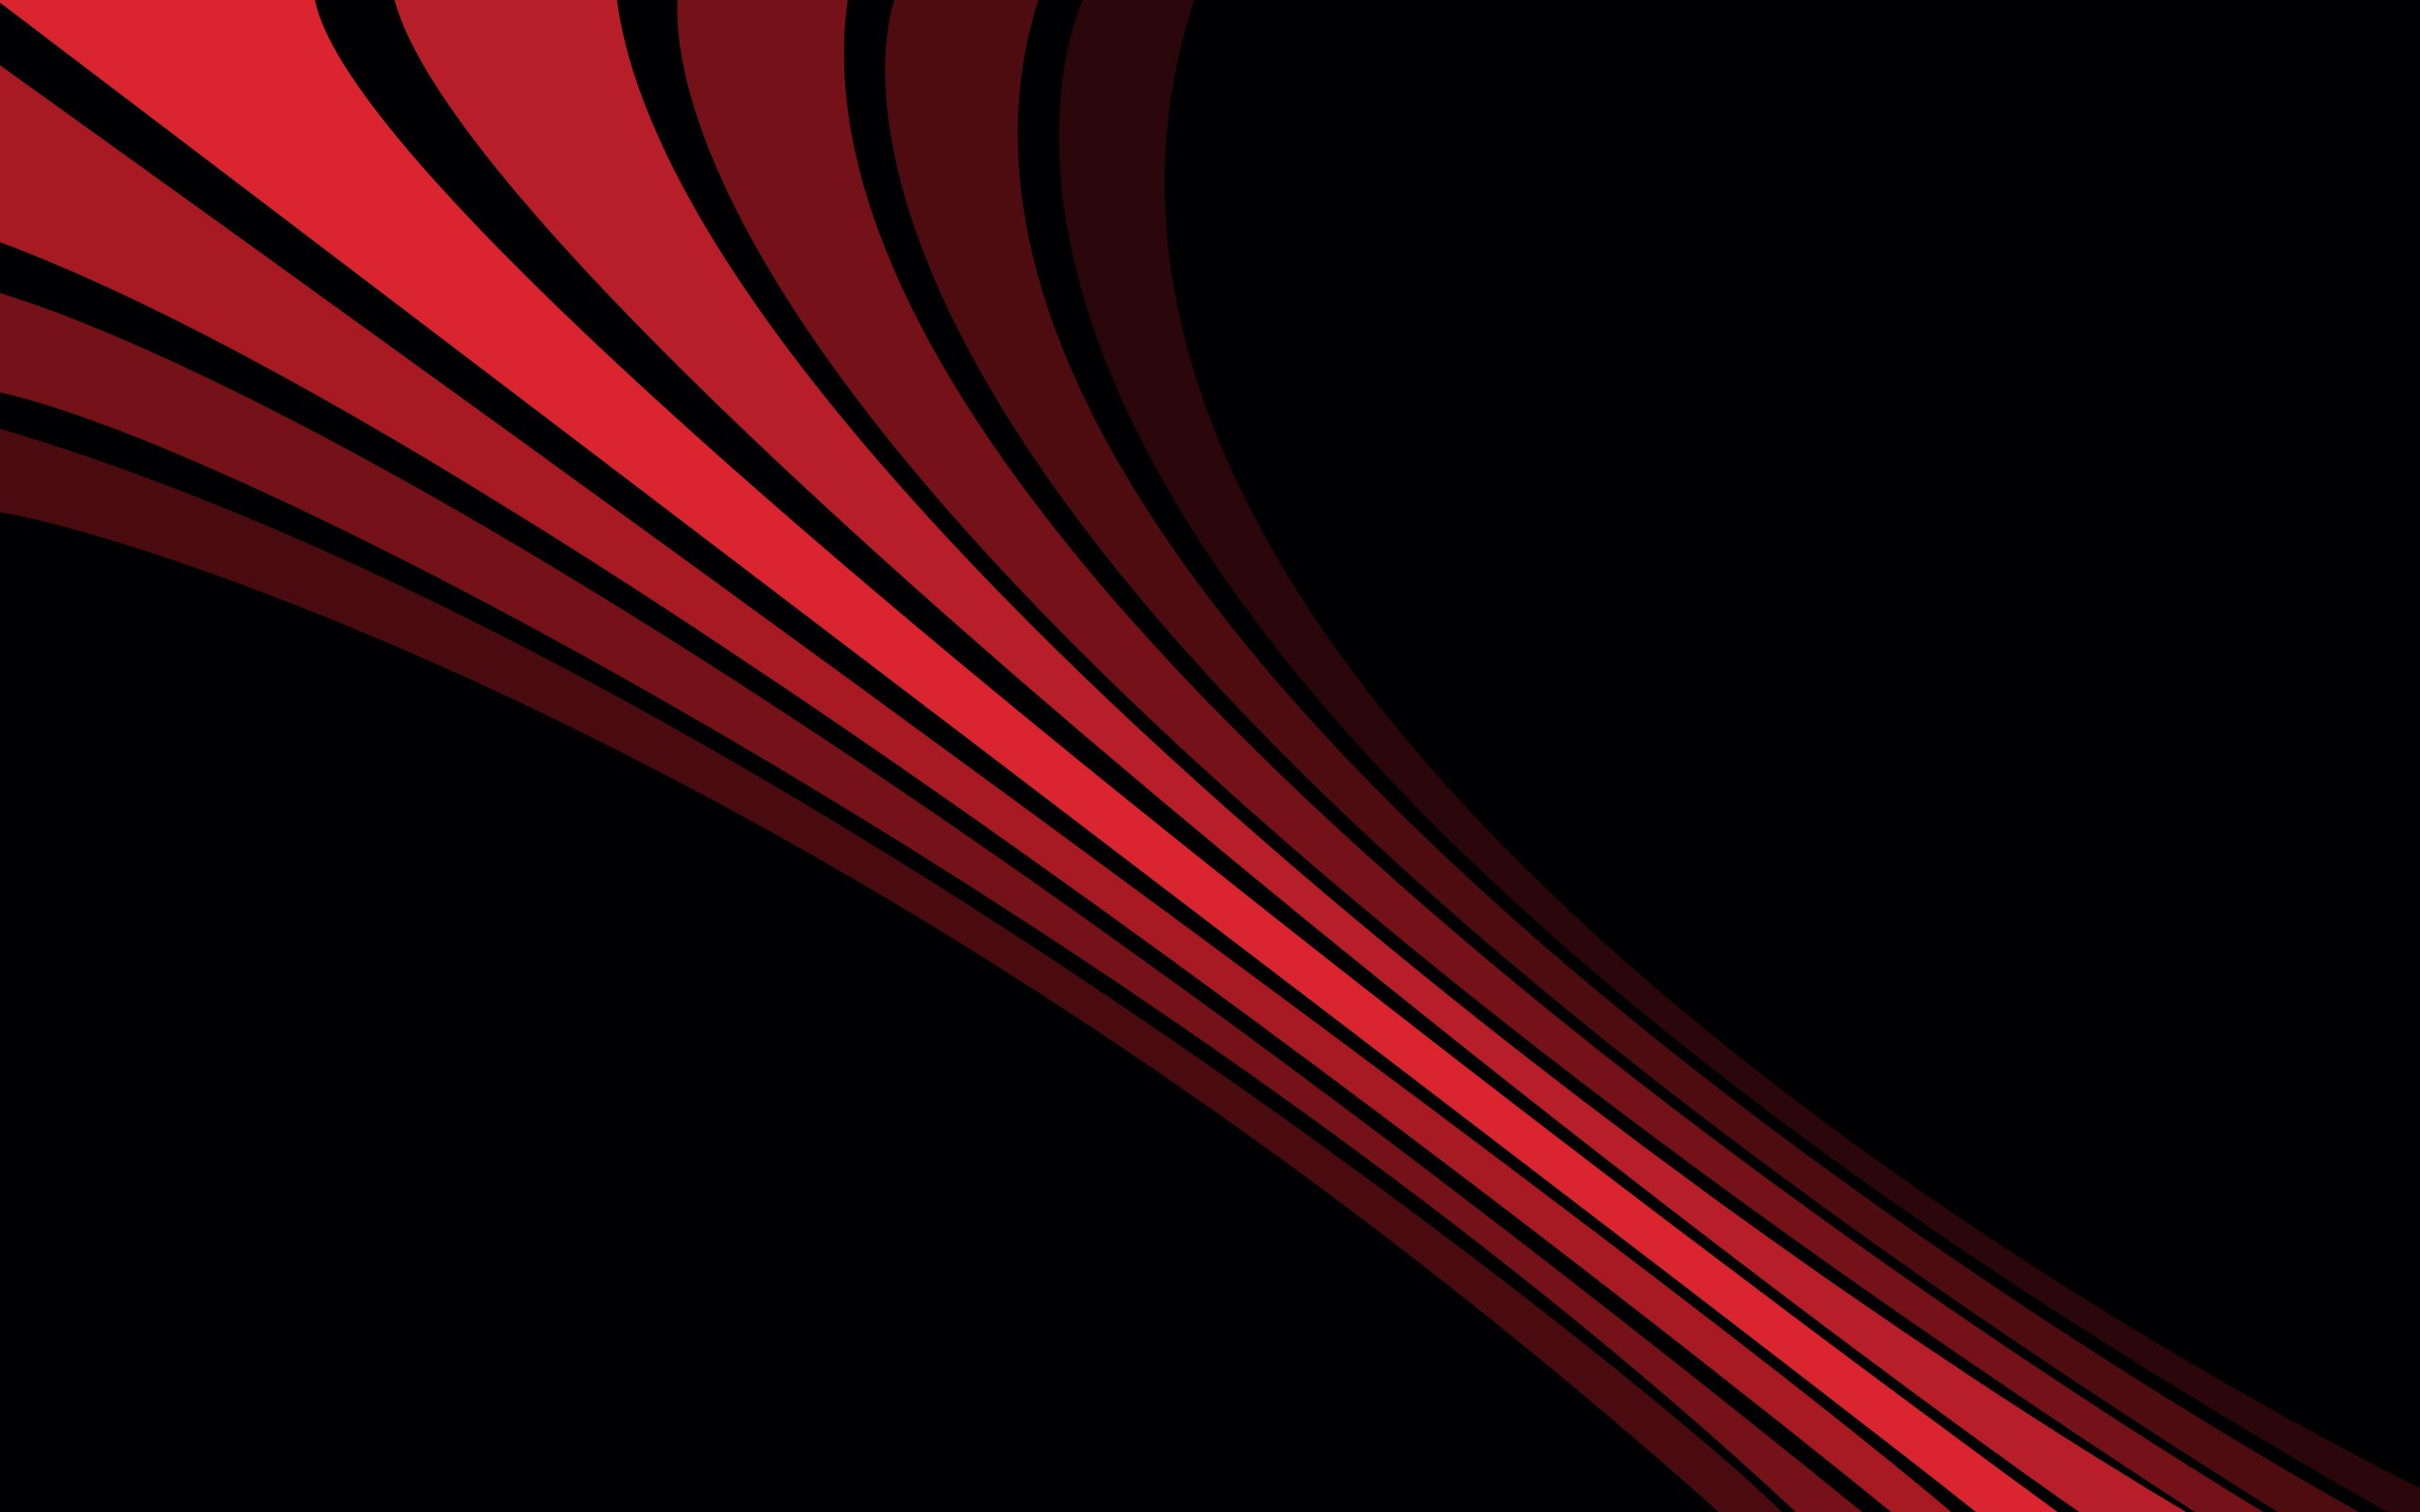 Wallpaper Hd For Iphone 5s Red And Black Wallpaper 183 ① Download Free Cool Backgrounds